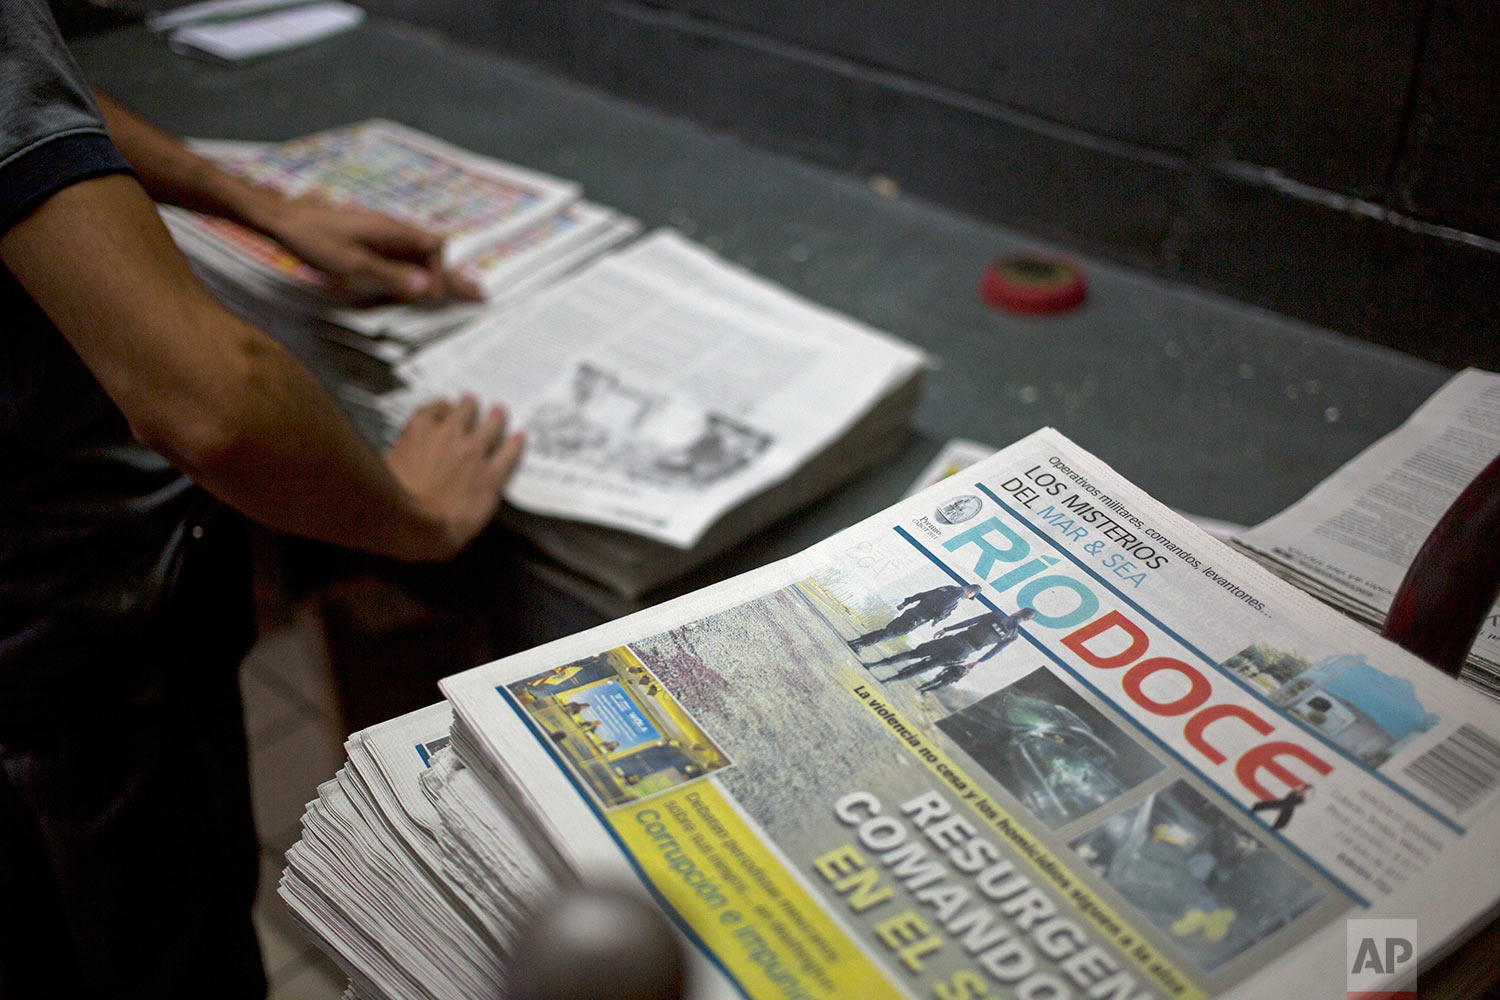 """In this July 1, 2017 photo, workers fold an issue of the weekly Riodoce after it was printed in Culiacan, Sinaloa state, Mexico. Riodoce was created in 2003 by five local journalist including the late Javier Valdez selling $50 shares. In Sinaloa, """"it was impossible to do journalism without touching the narco issue,"""" said director and co-founder Ismael Bojorquez. Over time the paper earned a reputation for brave and honest coverage. (AP Photo/Enric Marti)"""